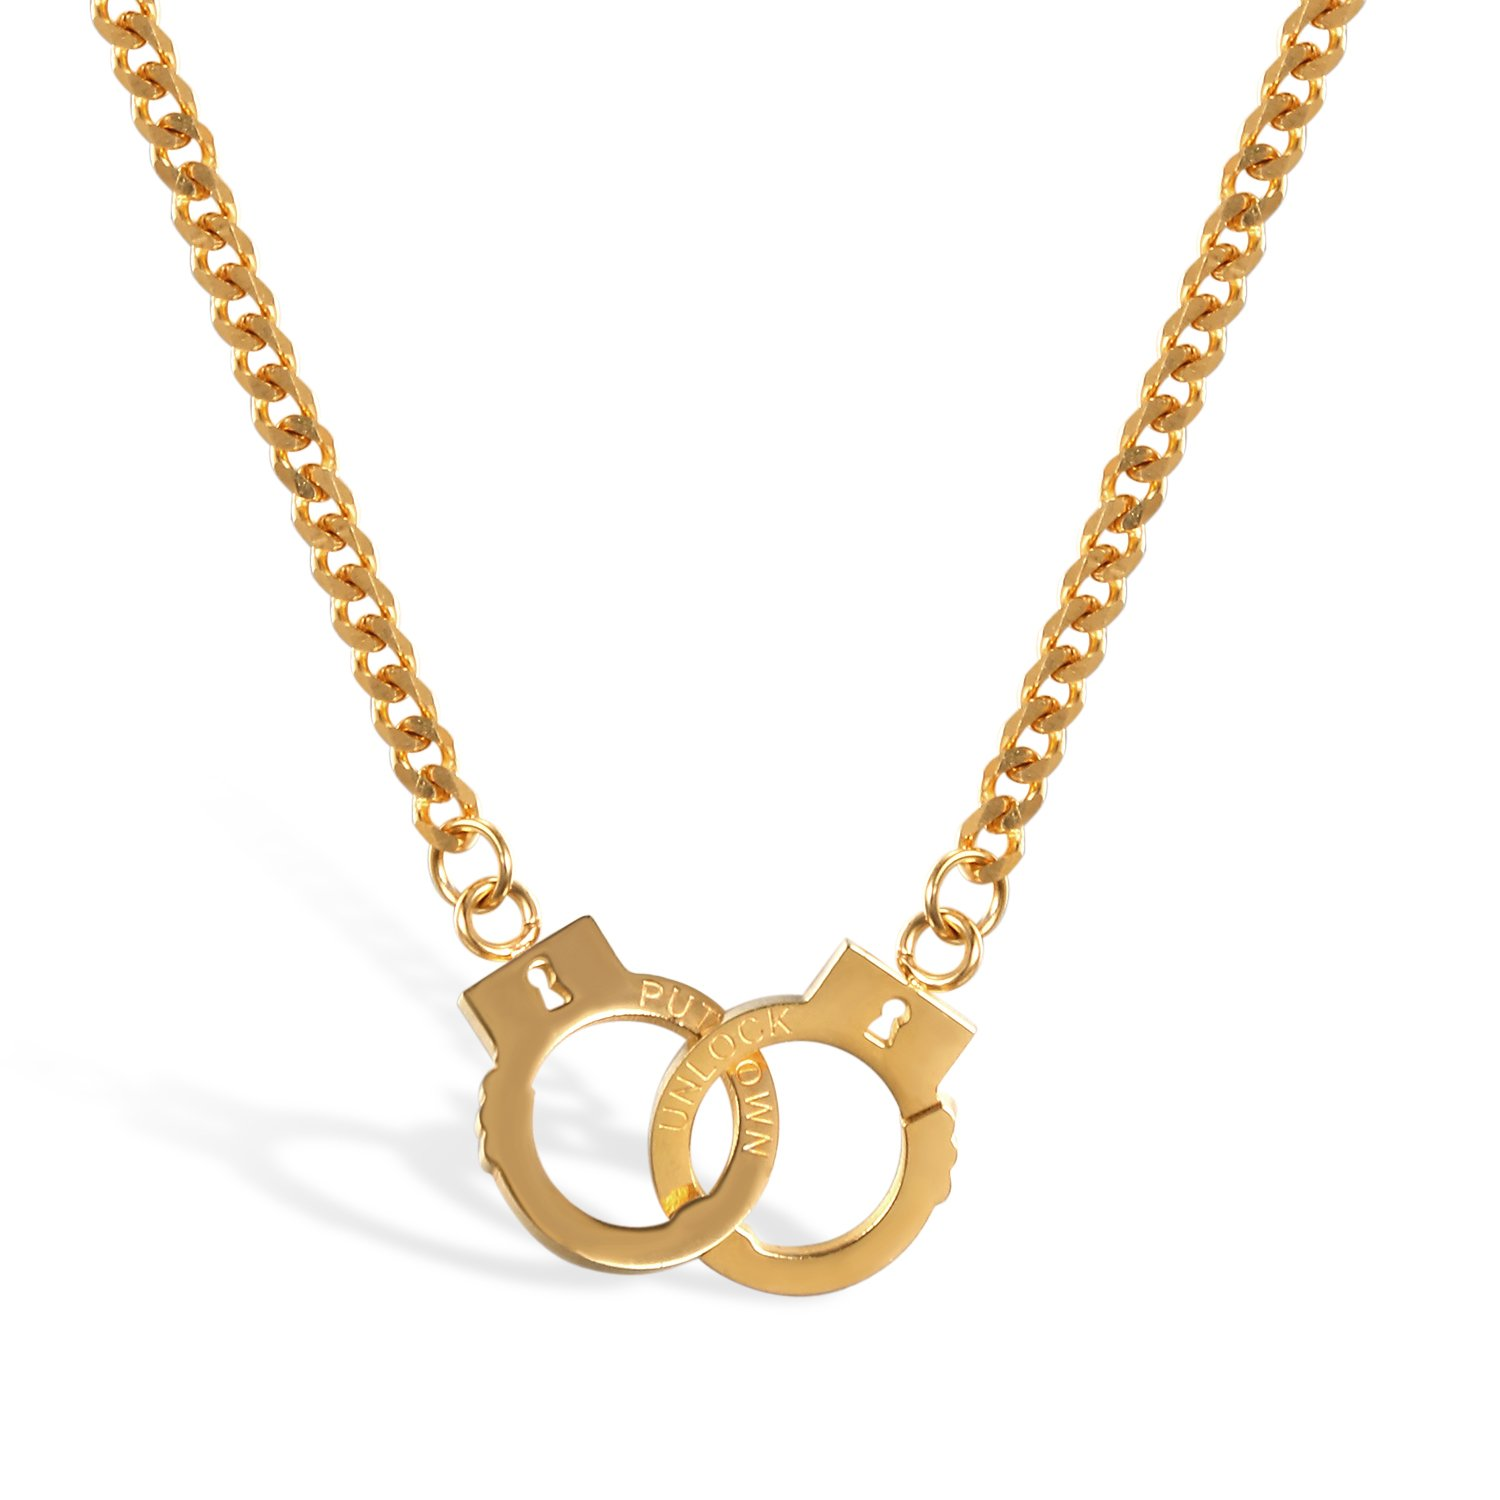 JewelryWe Unisex Handcuffs Charm Pendant Stainless Steel Link Chain Necklace for Men Women JW130P0052